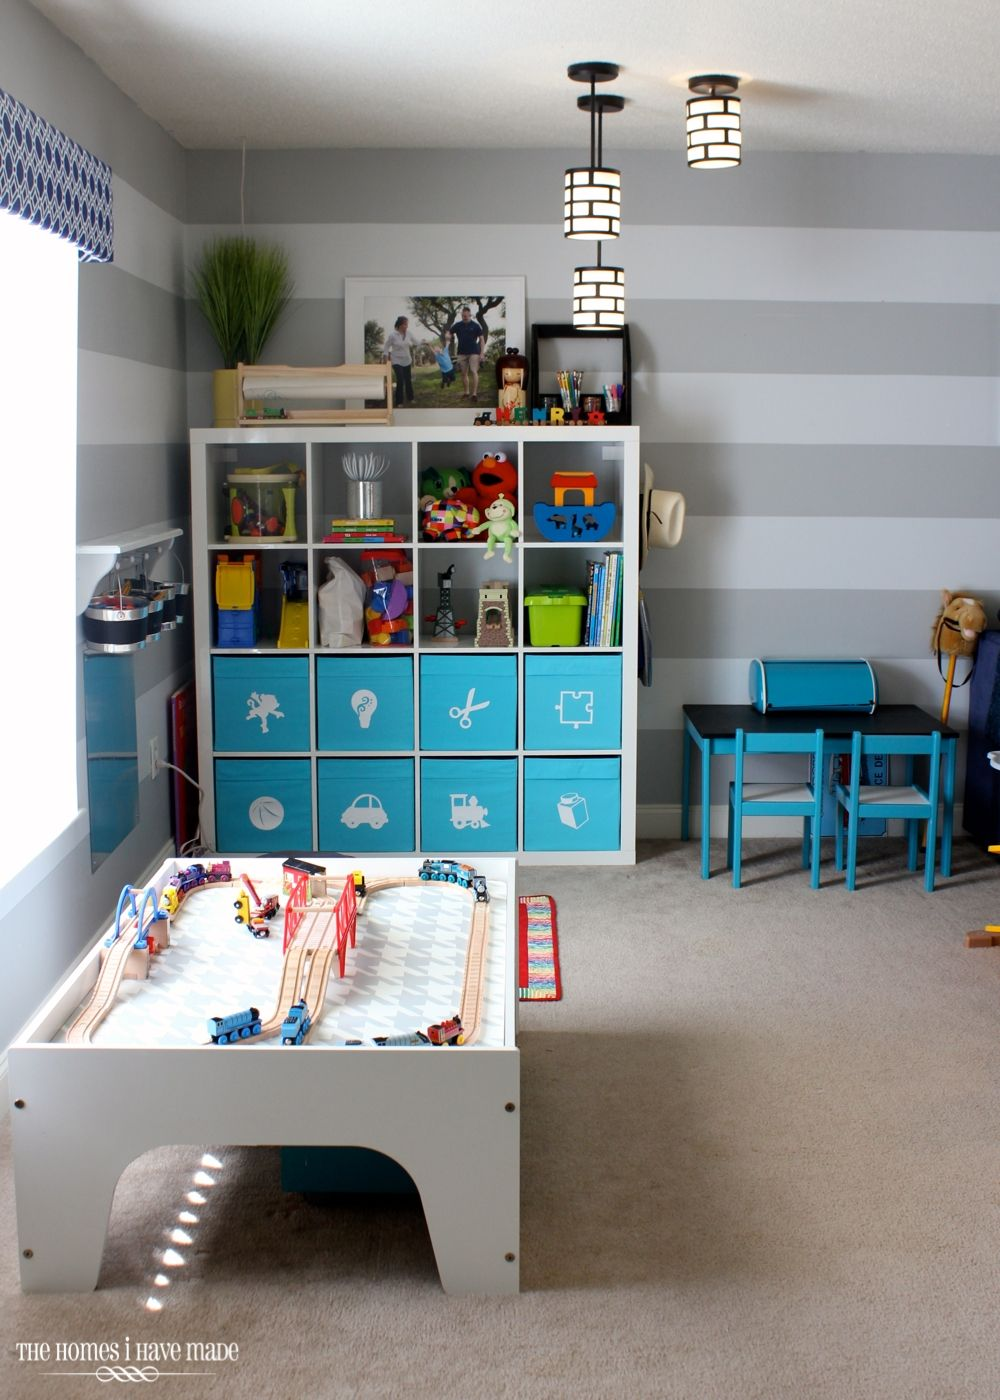 This organized and stylish playroom designu2014complete with